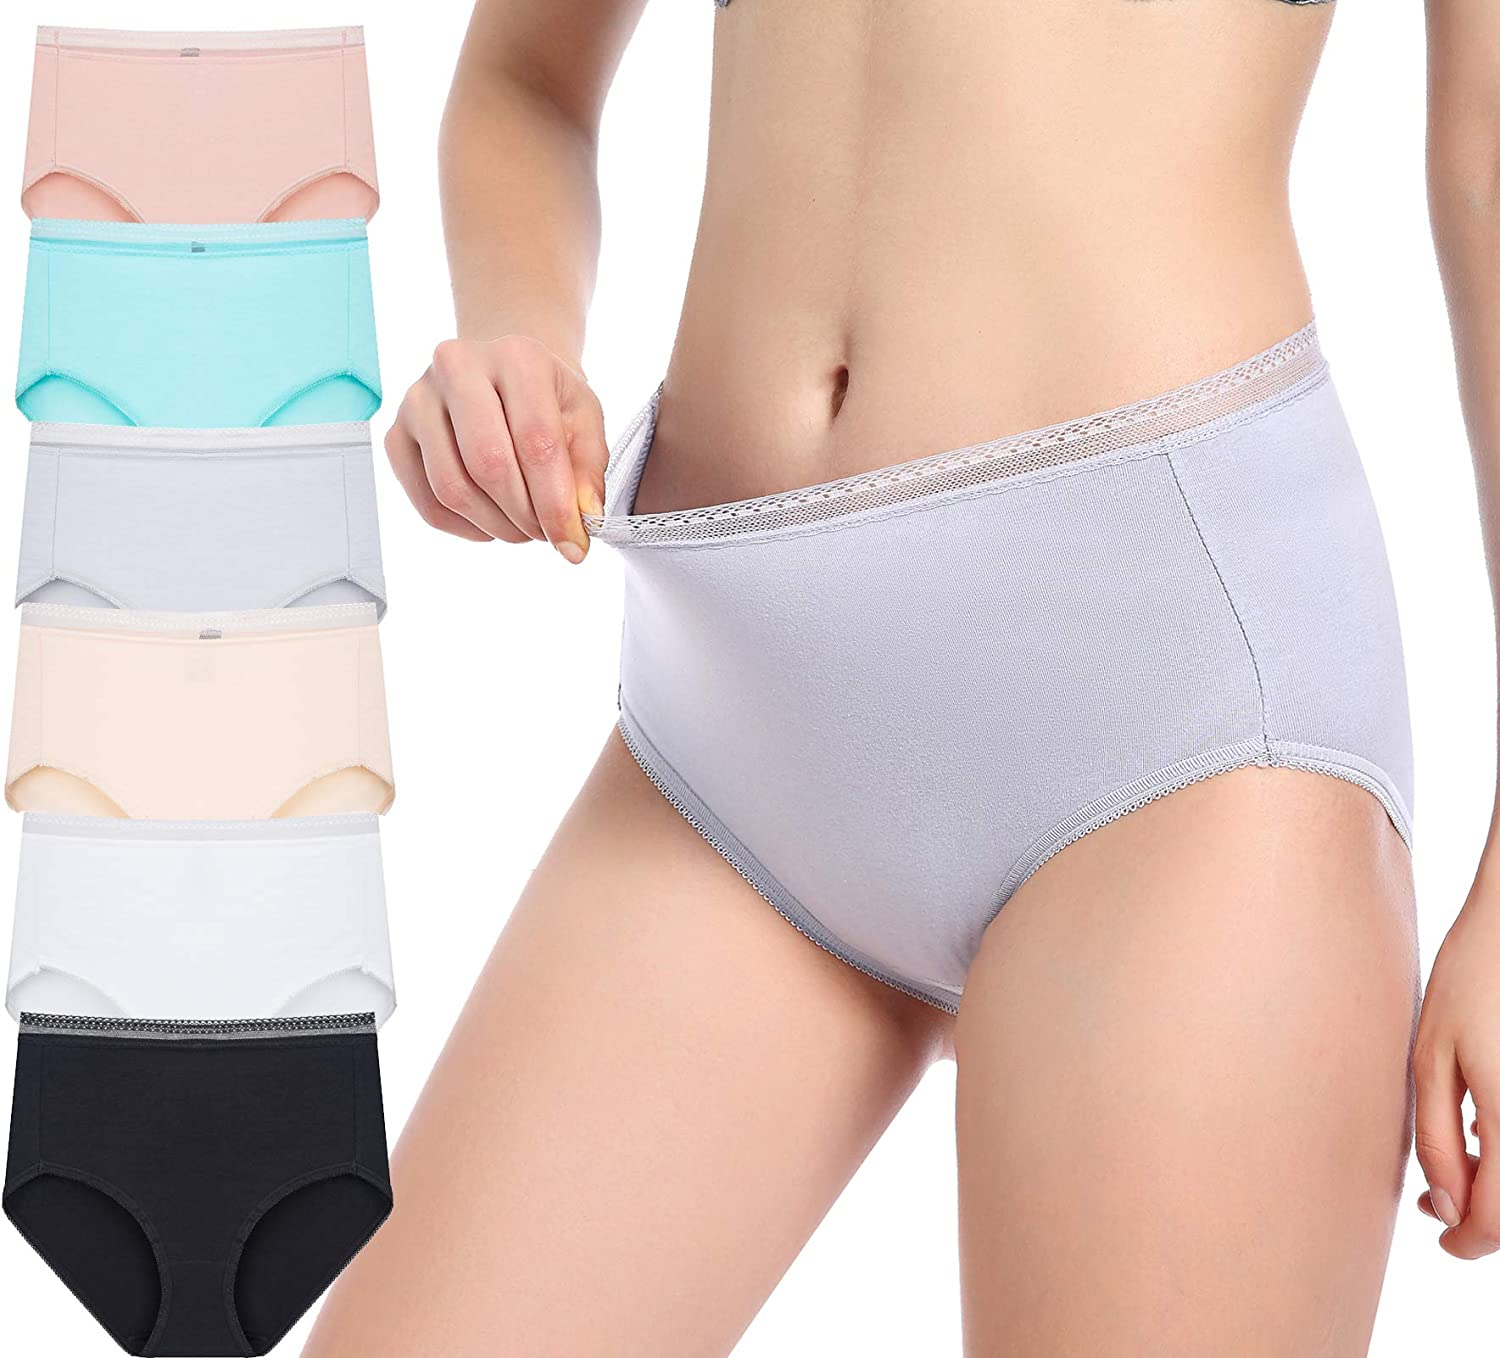 6 Pack Woman's High Waisted Cotton Soft and Breathable Panties, Colorful Full Rear Coverage Panties (Plus Size)